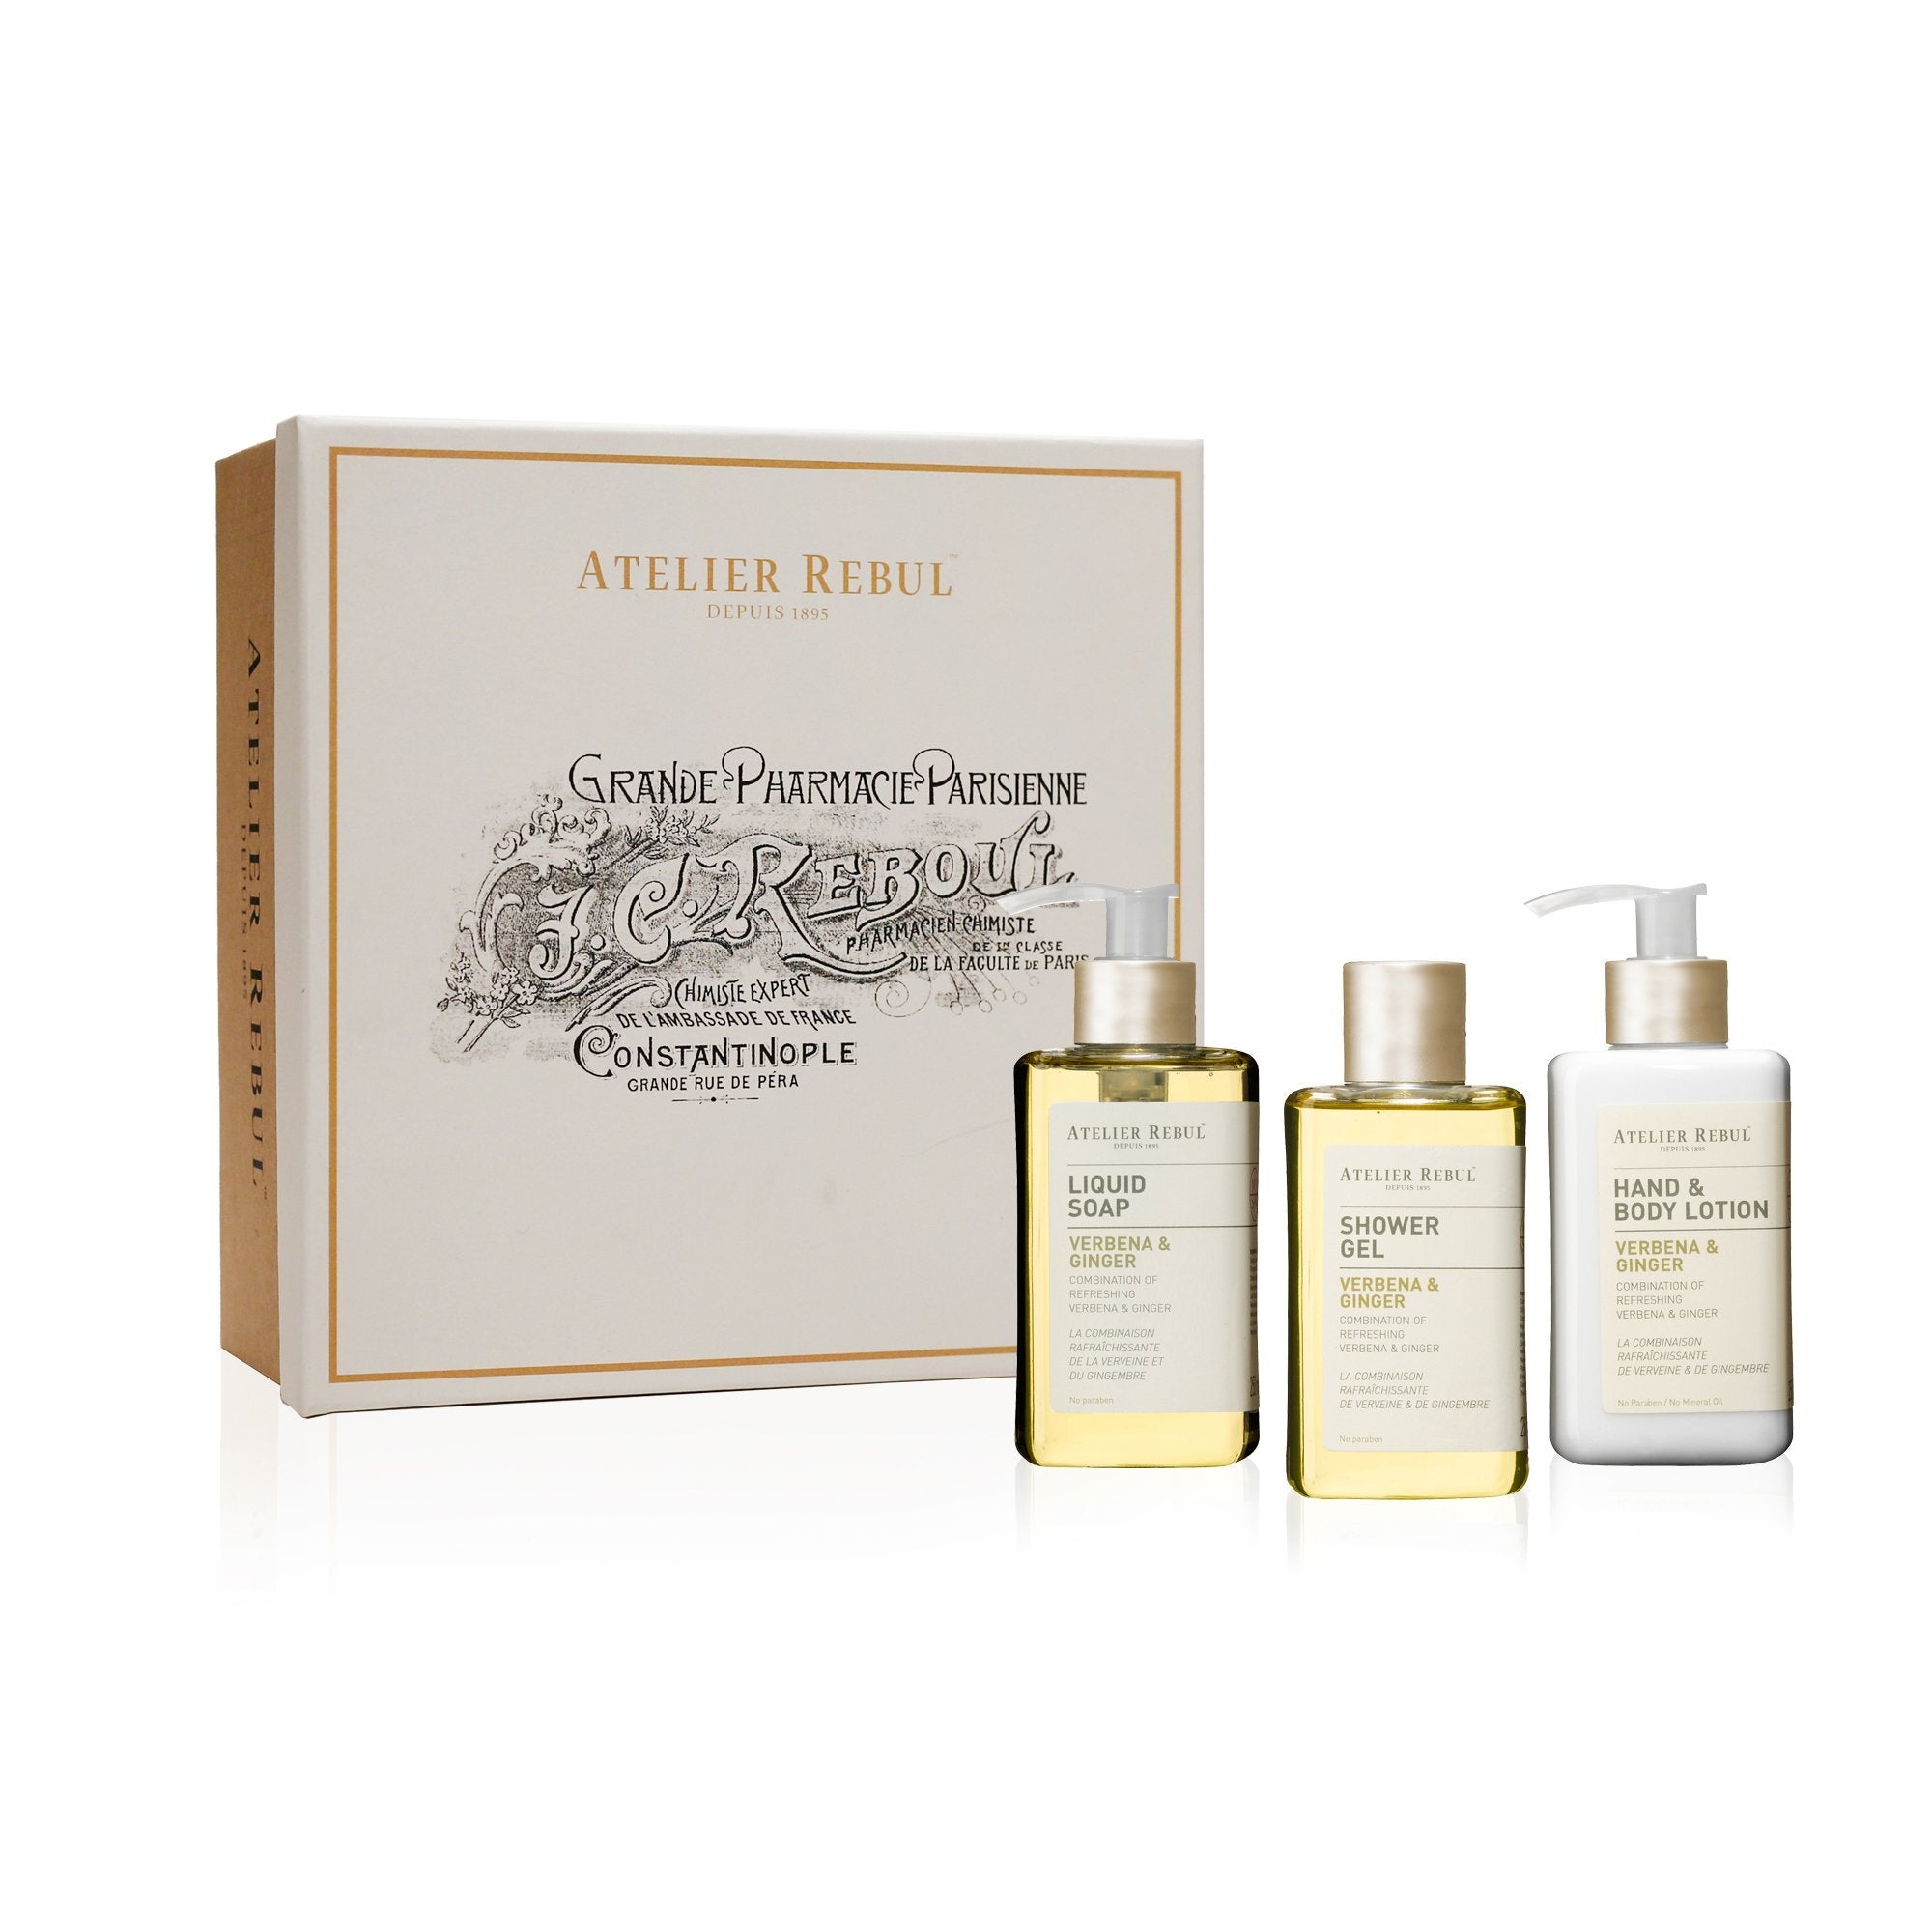 Verbena & Ginger Liquid Soap, Shower Gel and Hand & Body Lotion Giftset